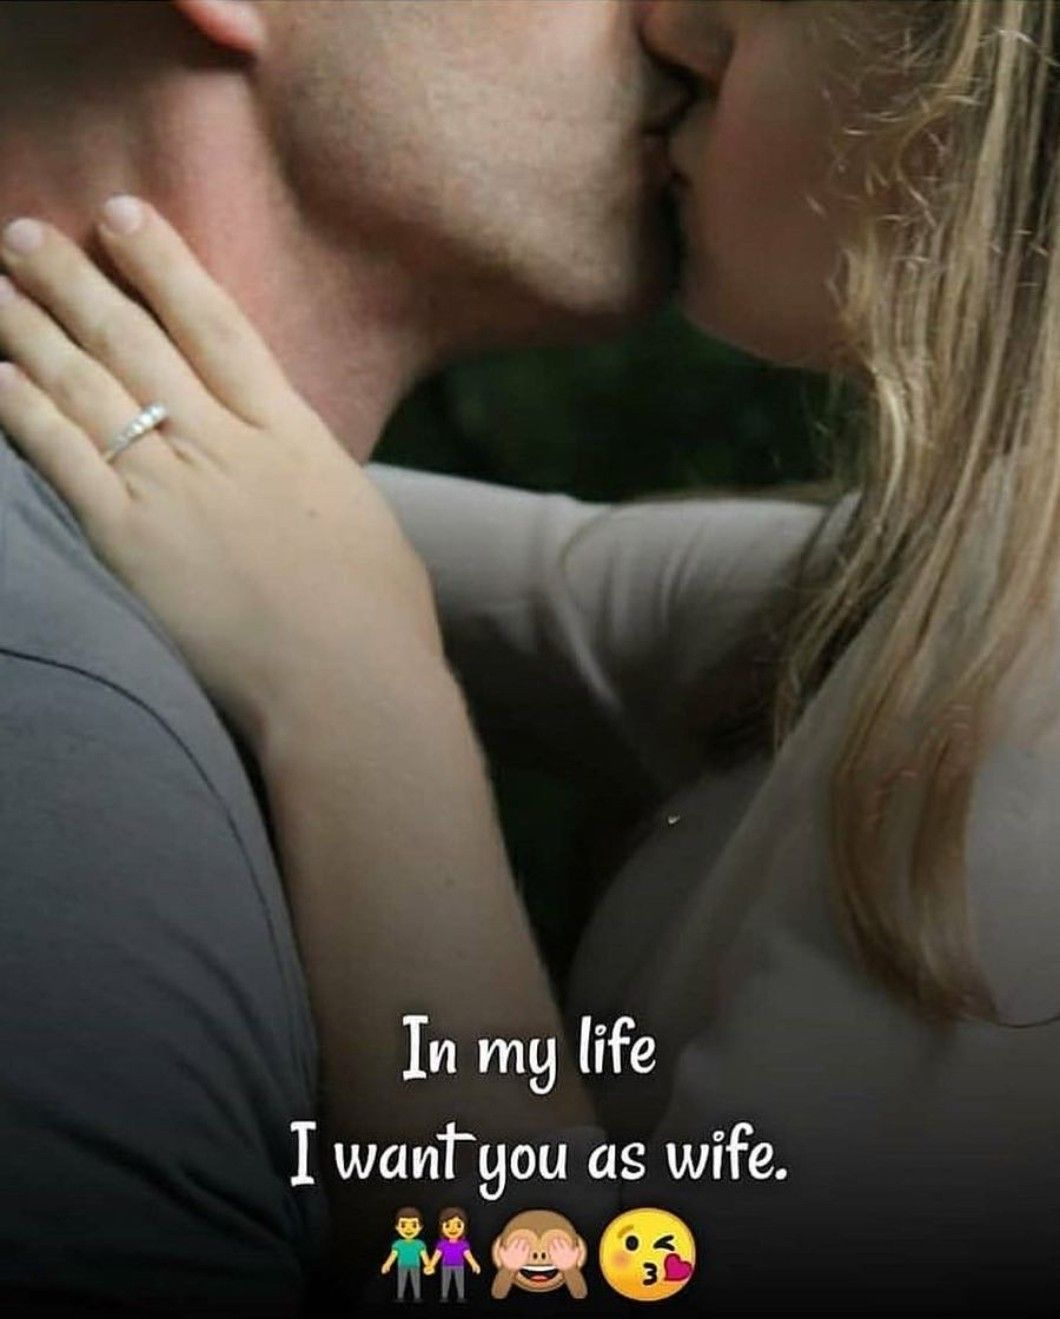 Pin By Ozman Khan On Xmsg Romantic Quotes For Her Love Quotes For Girlfriend Love Husband Quotes